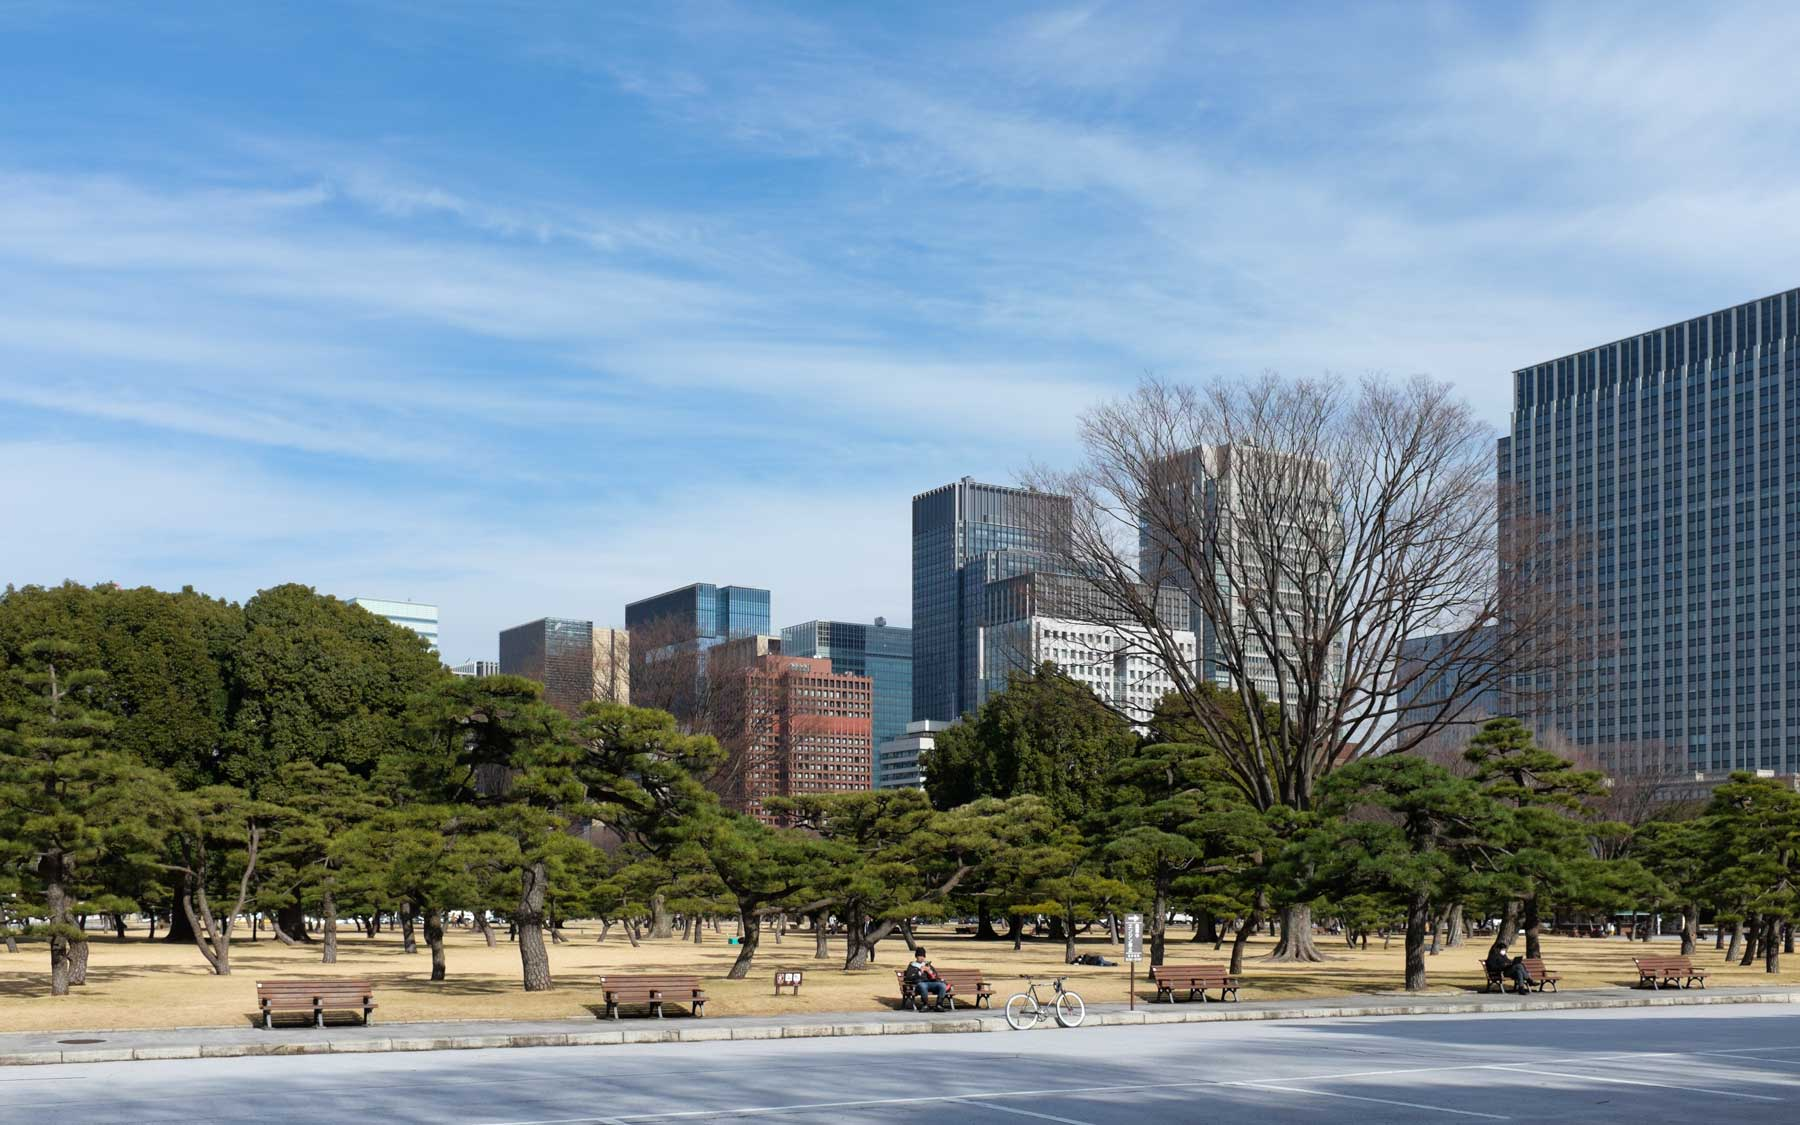 Looking towards Tokyo Station from the grounds in front of the Imperial Palace.